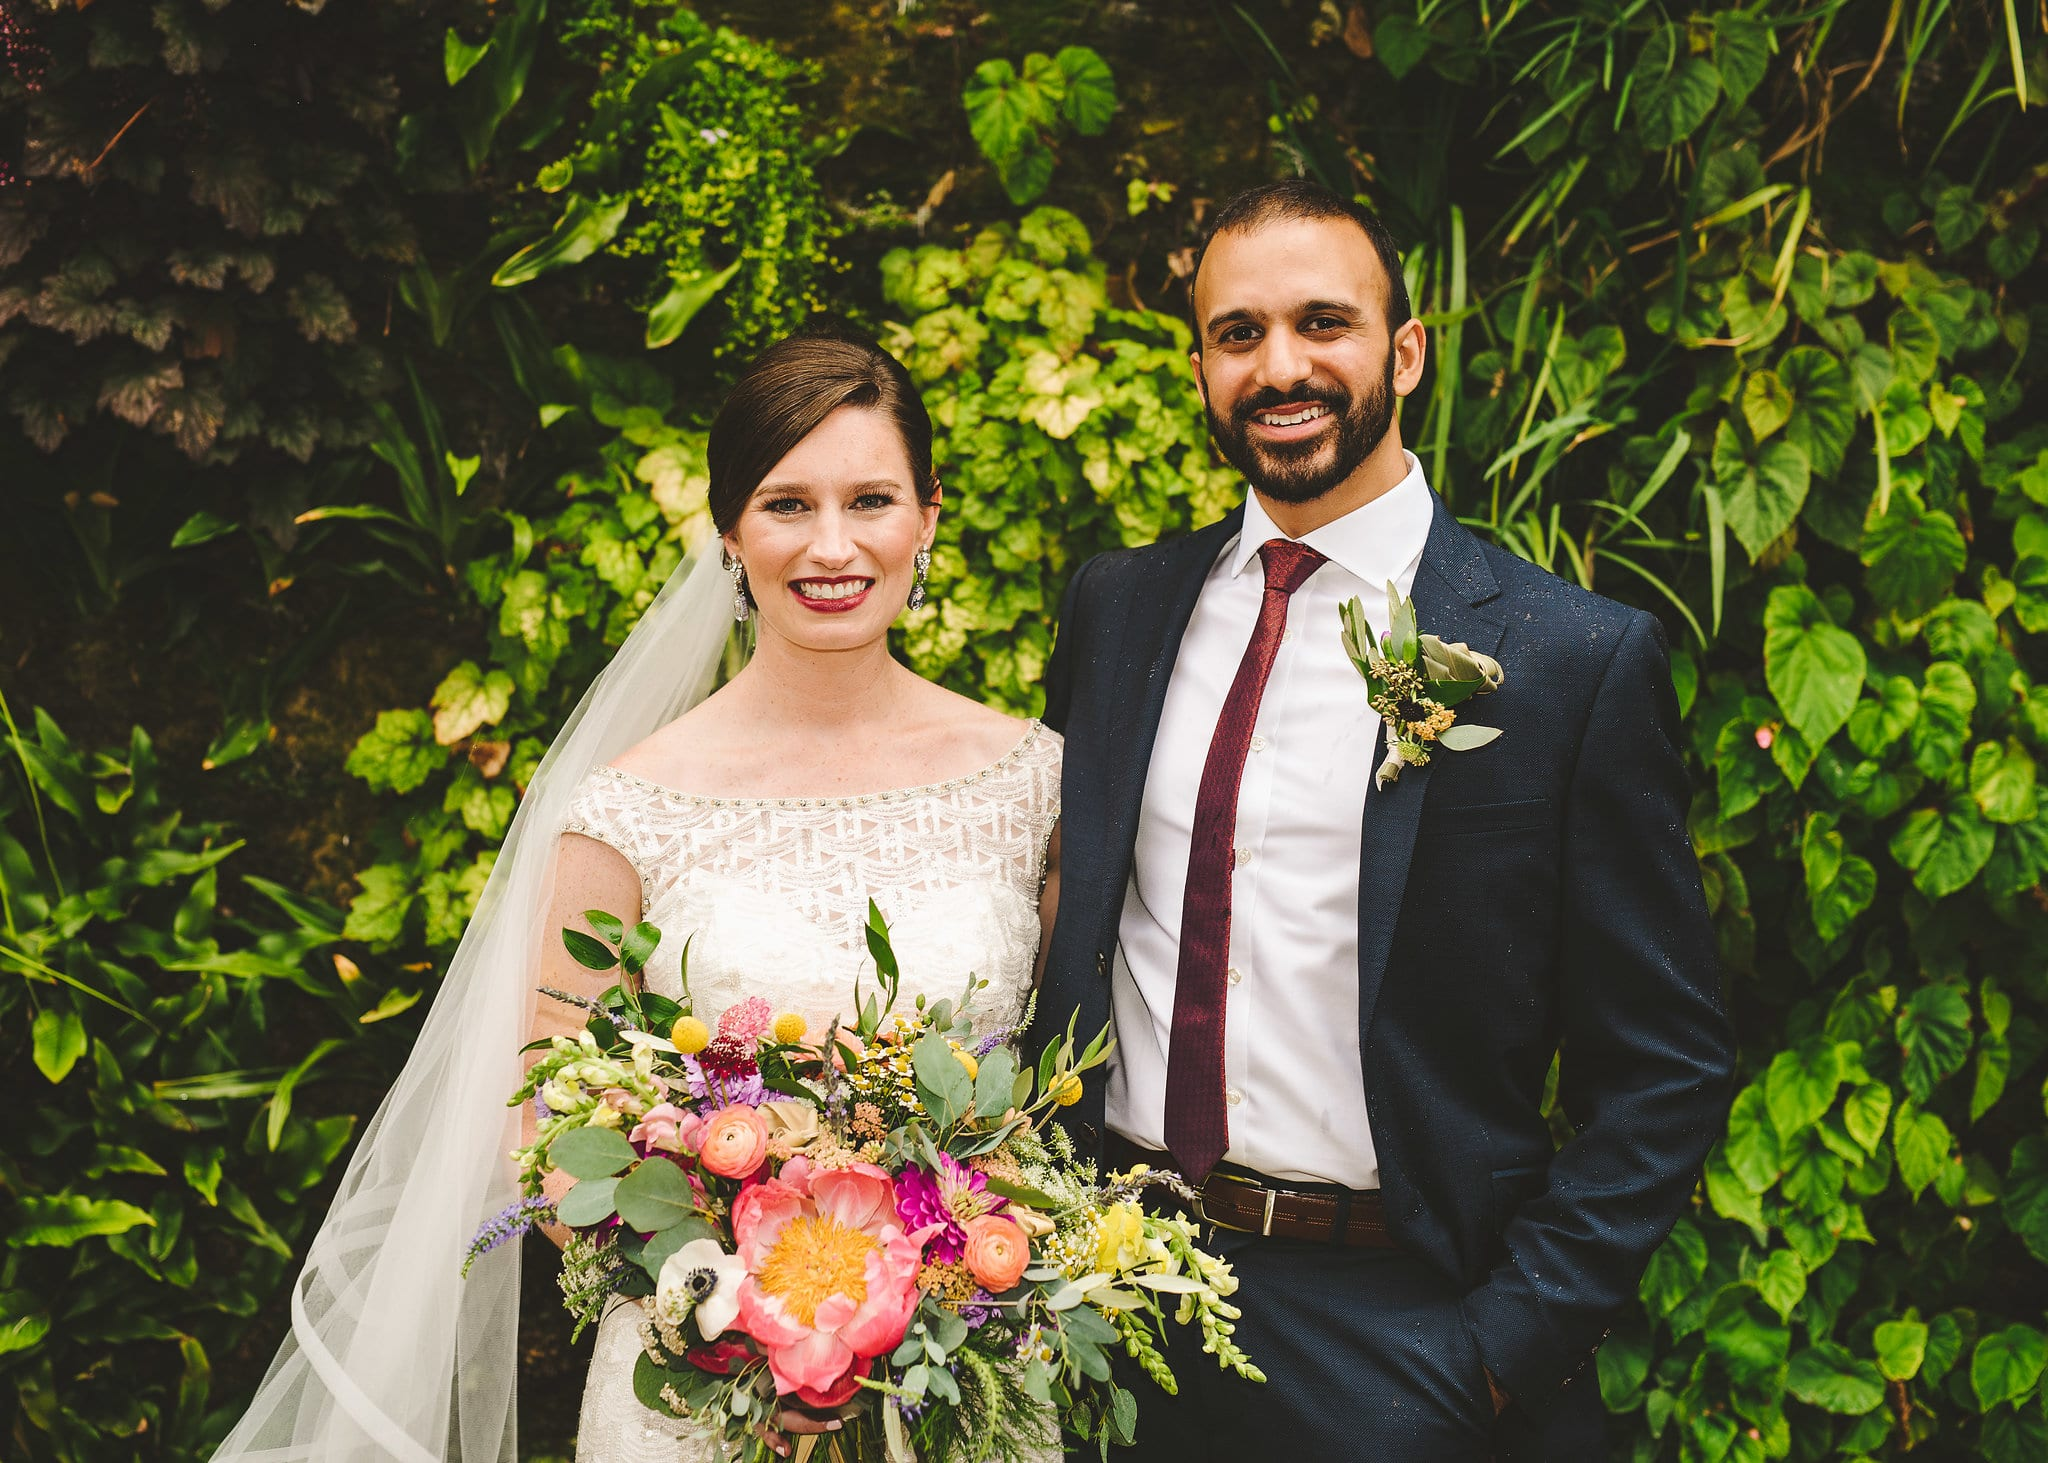 Wedding photos at the living wall at Foundation for the Carolinas in uptown Charlotte, NC with a gorgeous peony and colorful floral bouquet